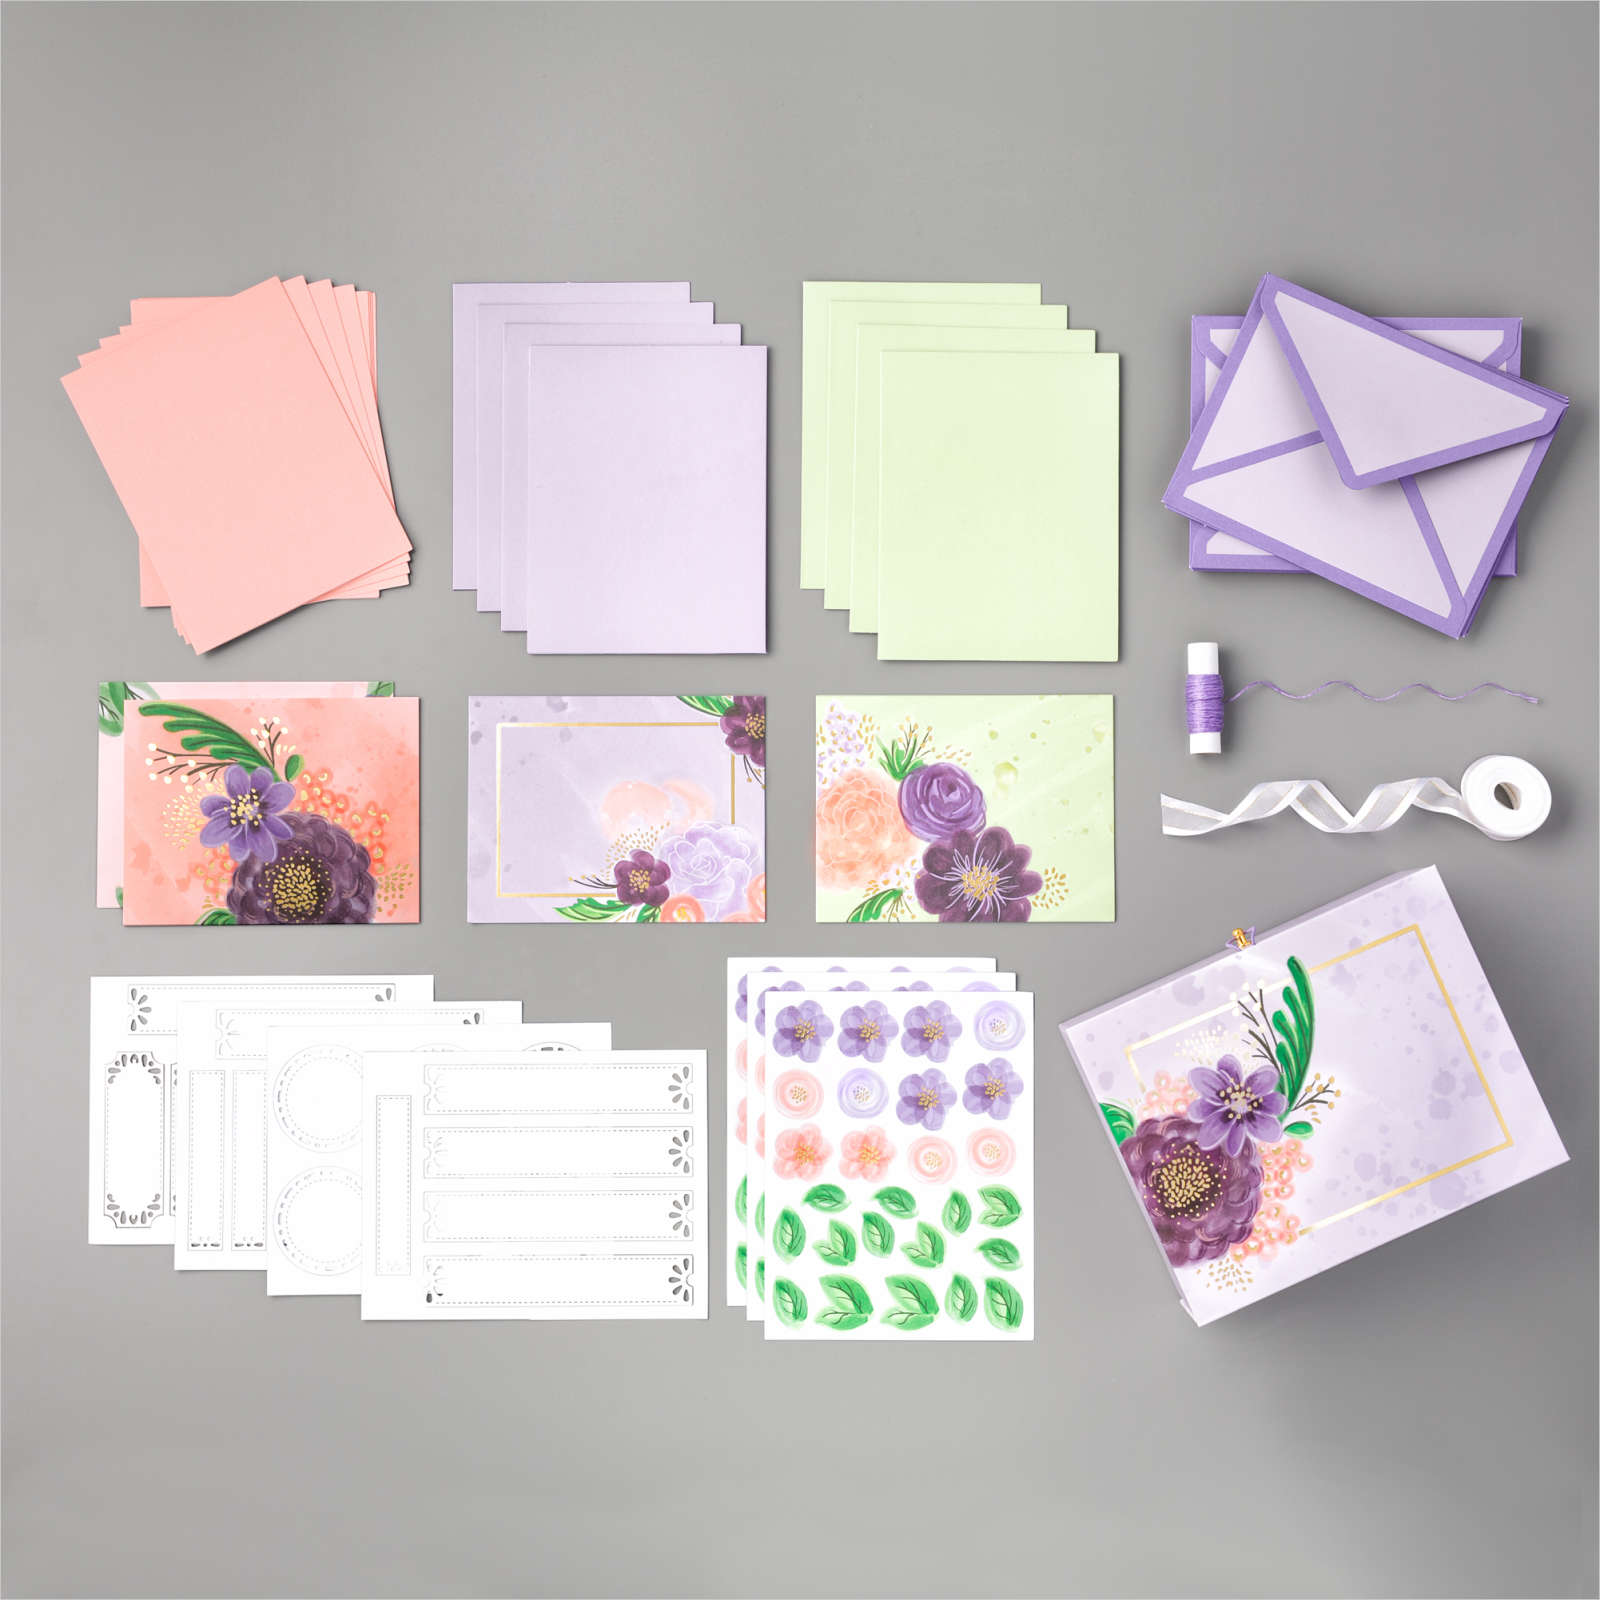 153131 gorgeous posies kit